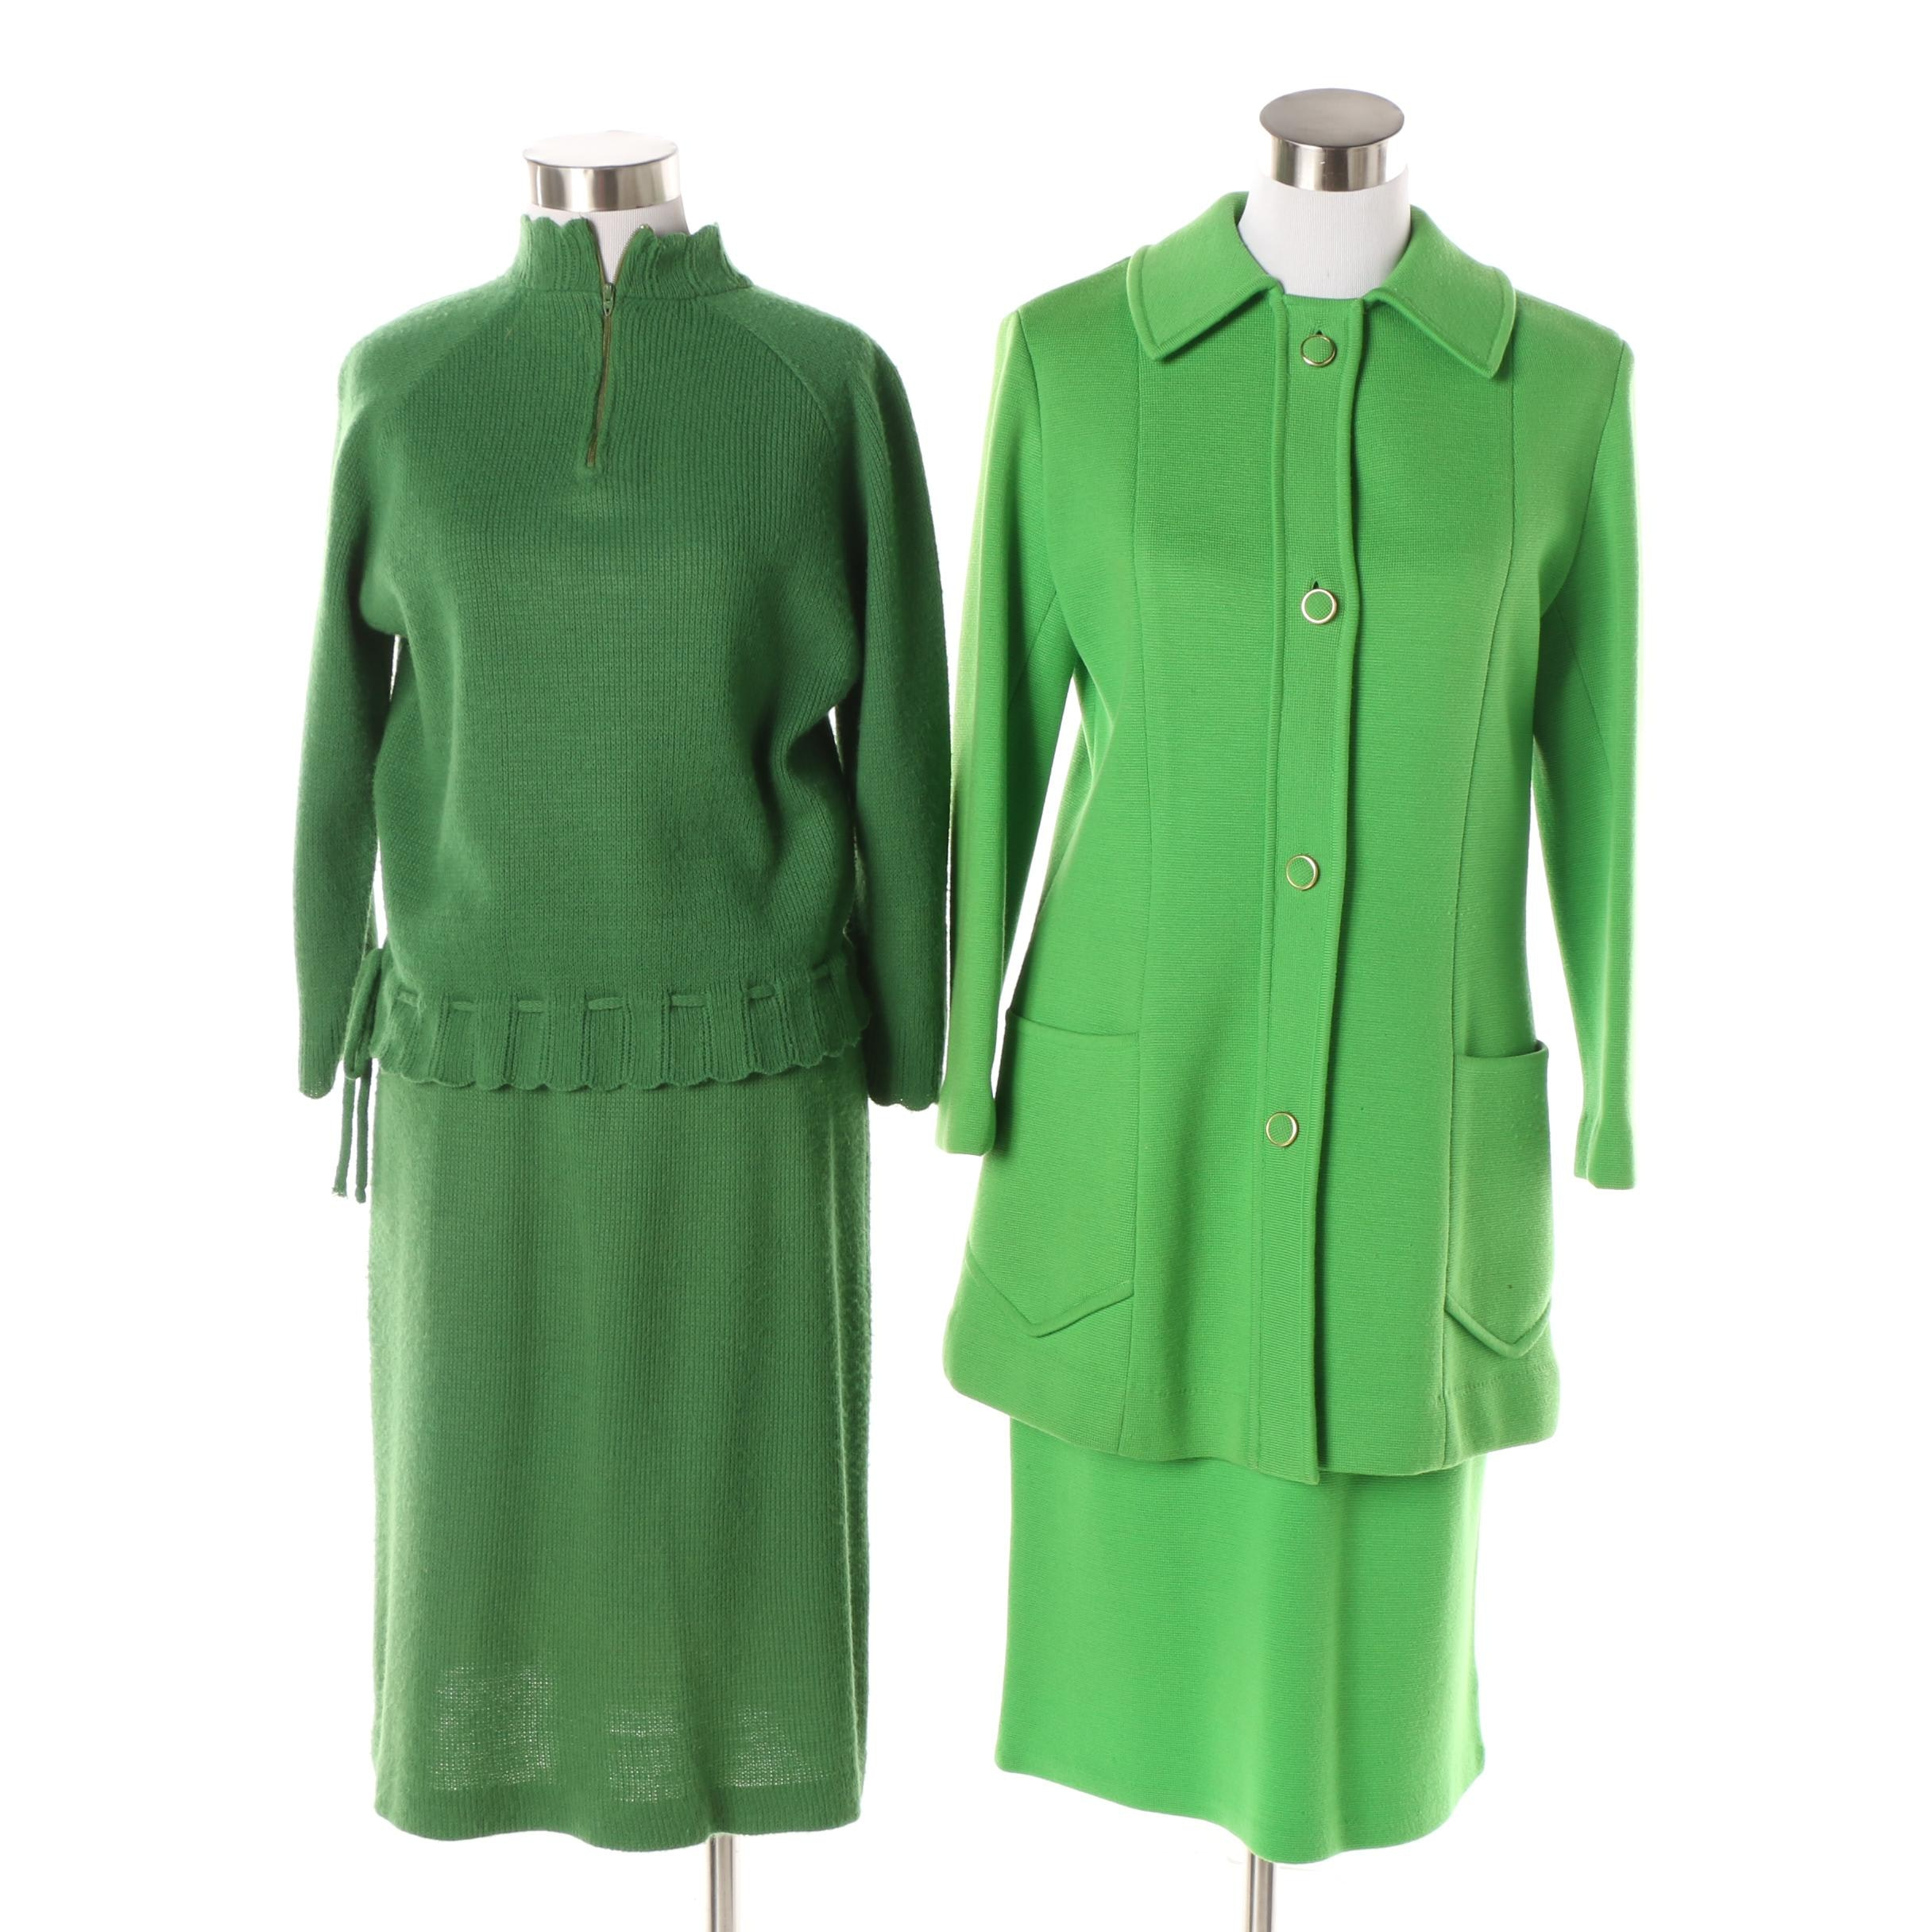 Circa 1960s Vintage Helen Whiting and Marshall Field & Company Green Skirt Sets